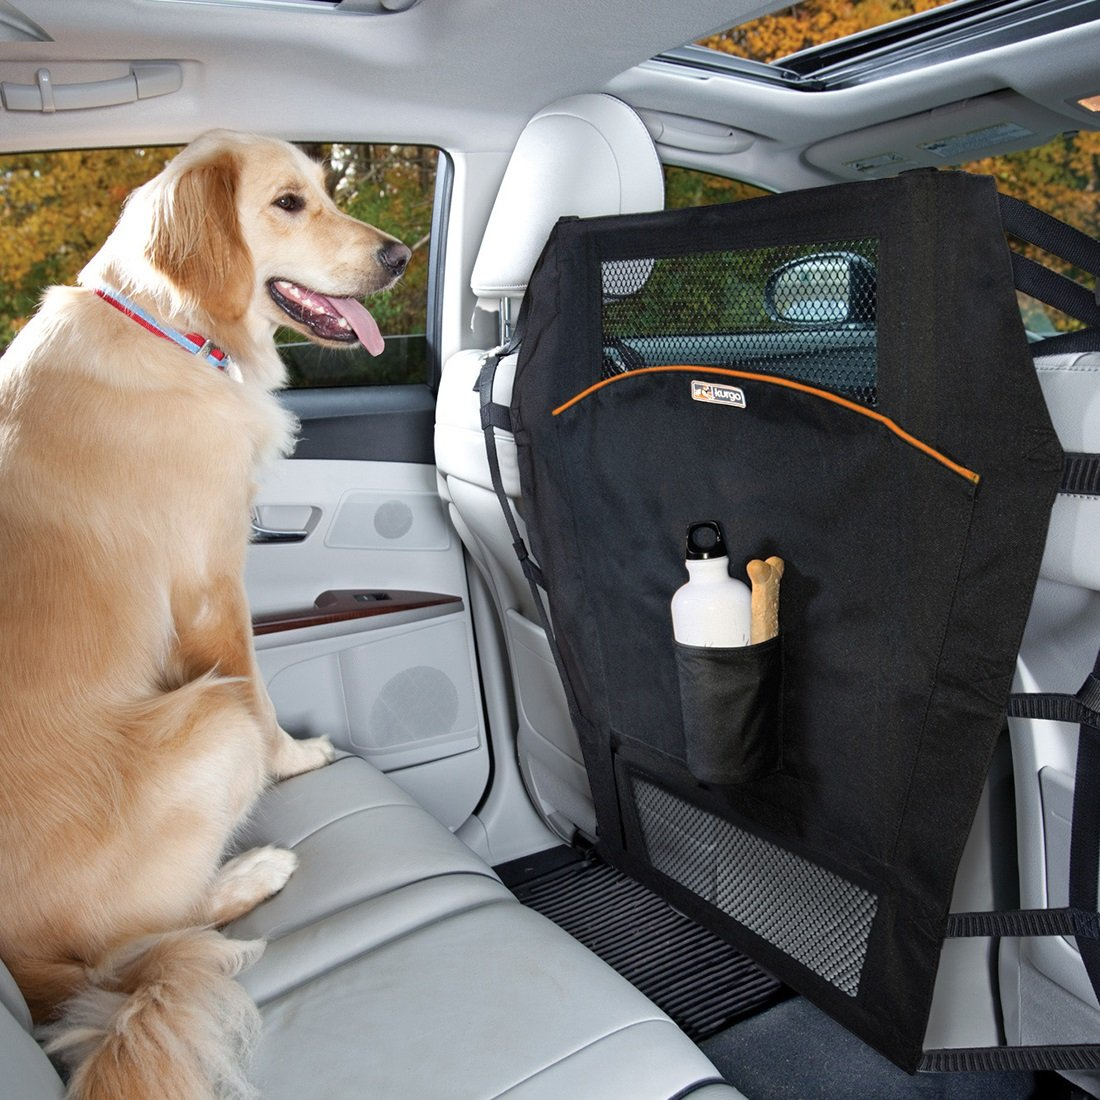 Kurgo Backseat Dog Car Barrier for Cars & SUVs Mesh Opening Easy Inssizetion